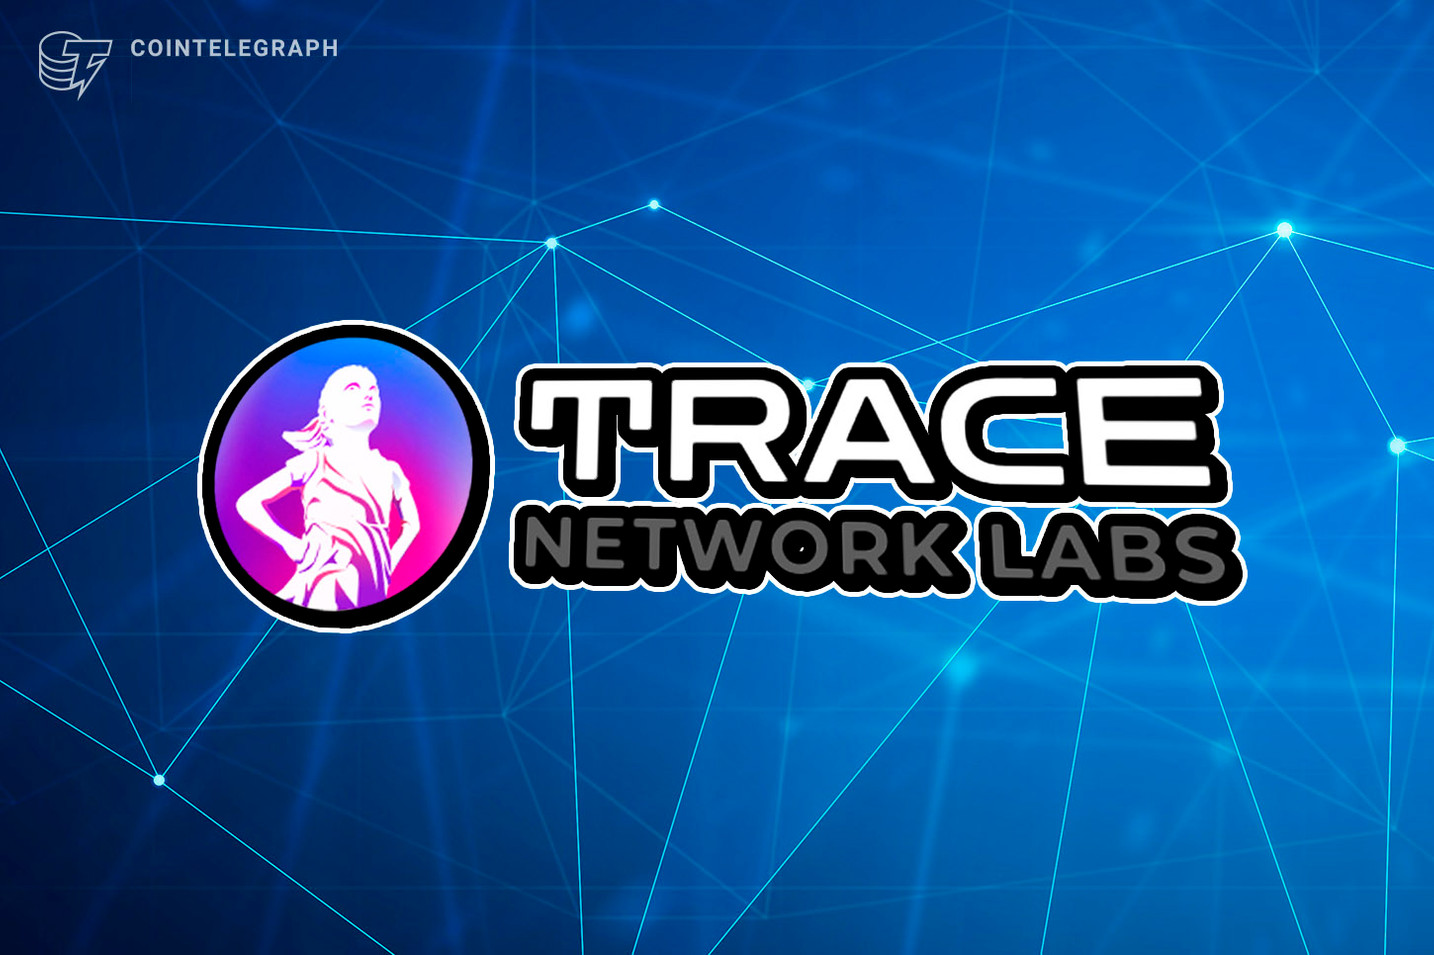 Trace Network Labs launches world's first craft beer NFT in collaboration with 7 Bridges brewing company